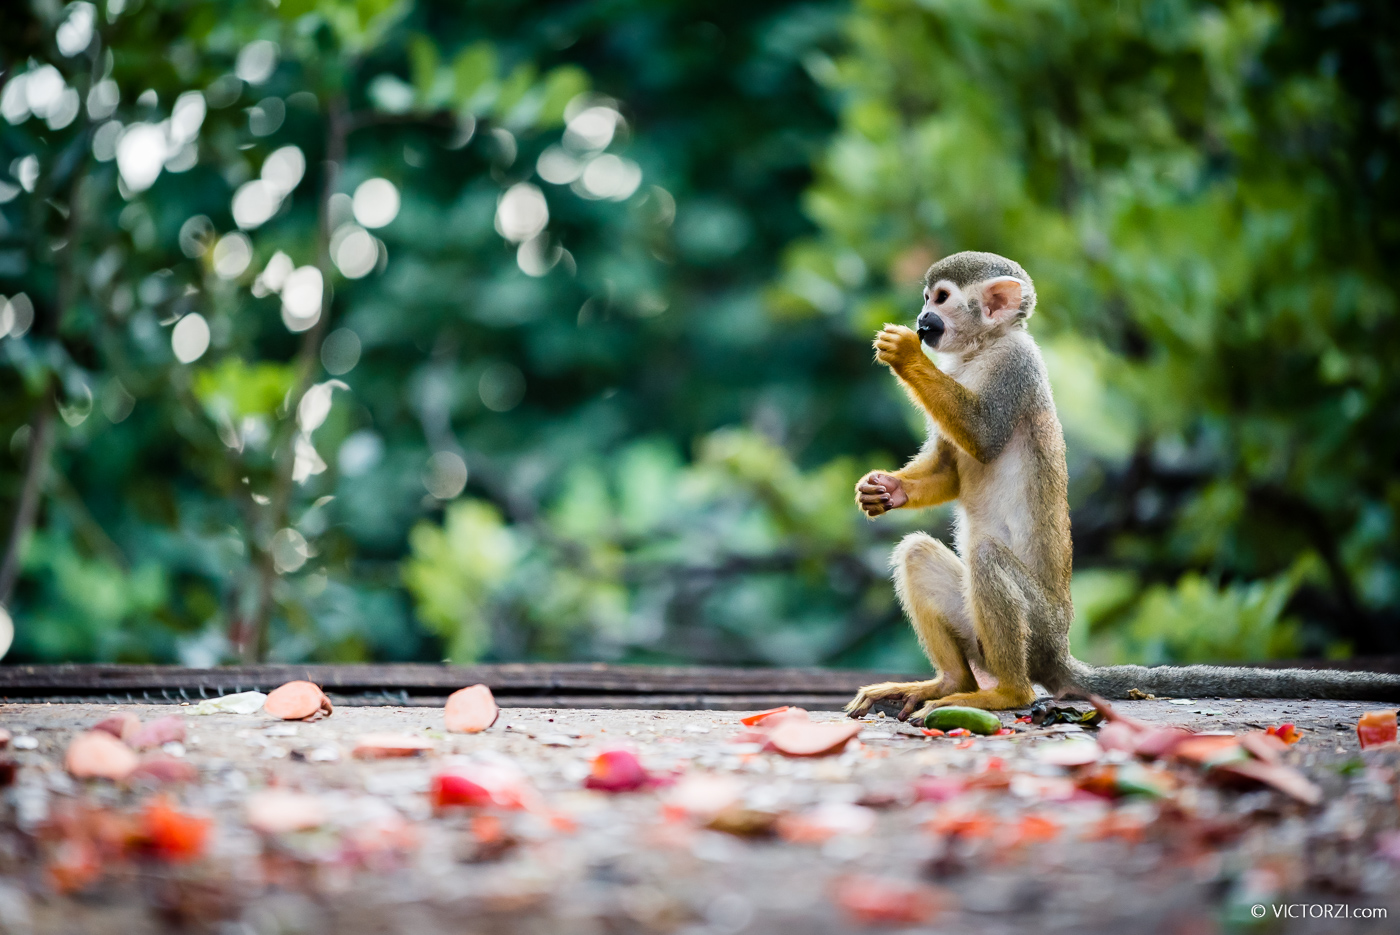 20190921 - Monkeys in Ben Shemen - 1759.